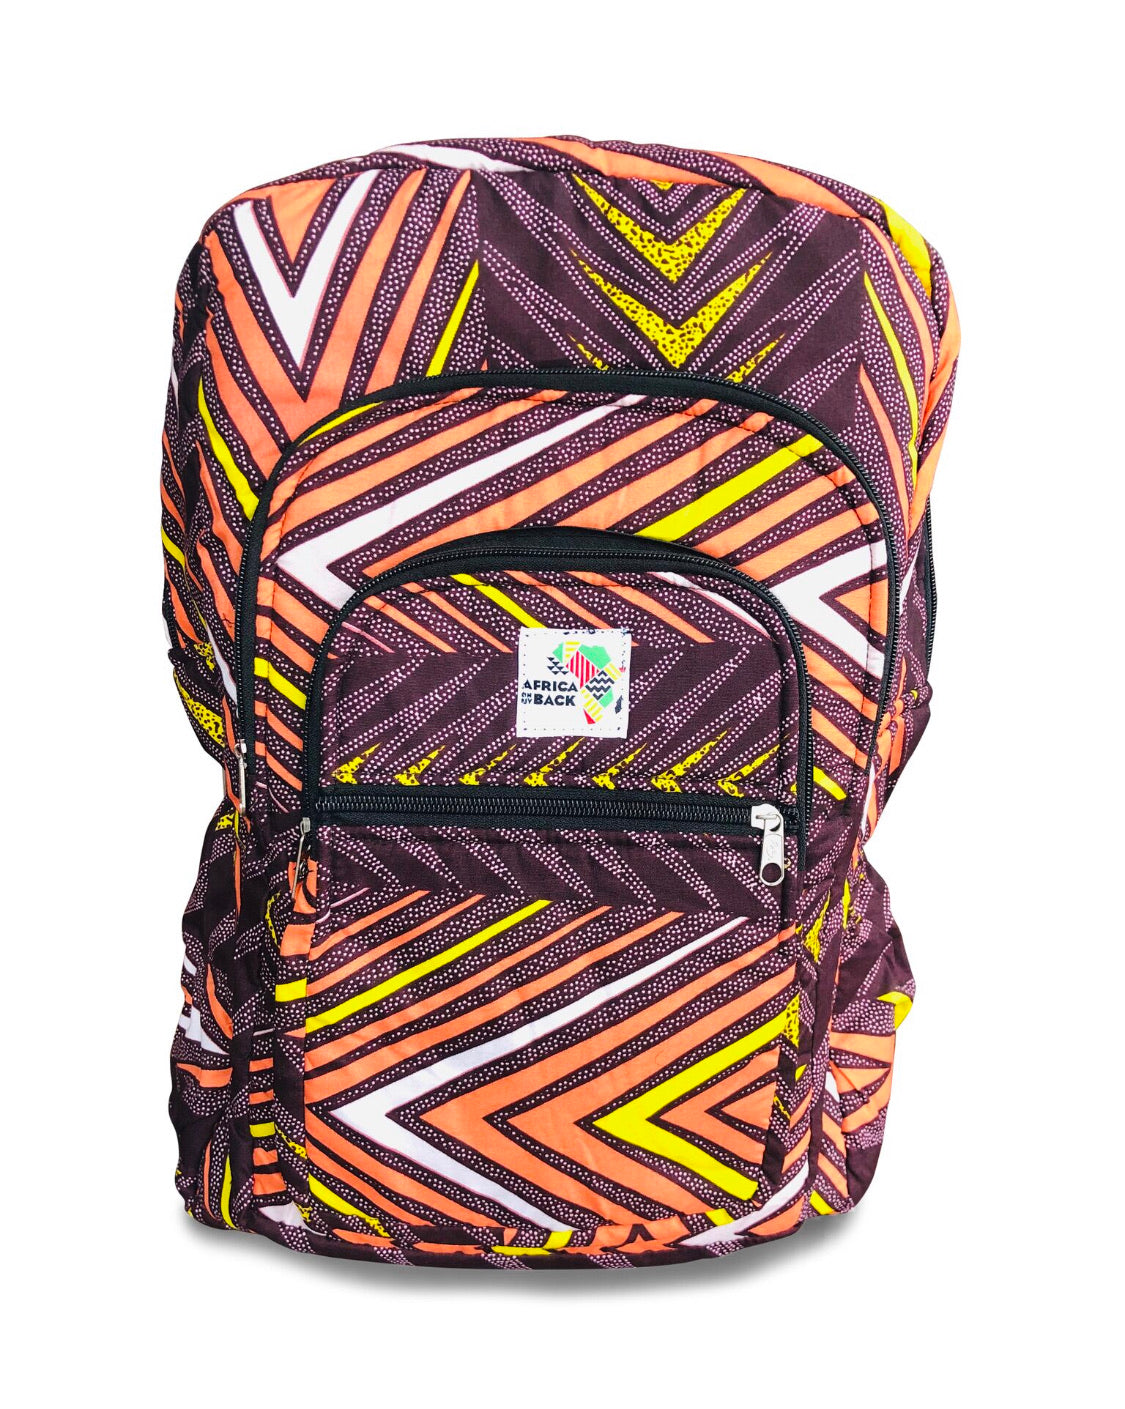 Retro Waves Full Size Backpack